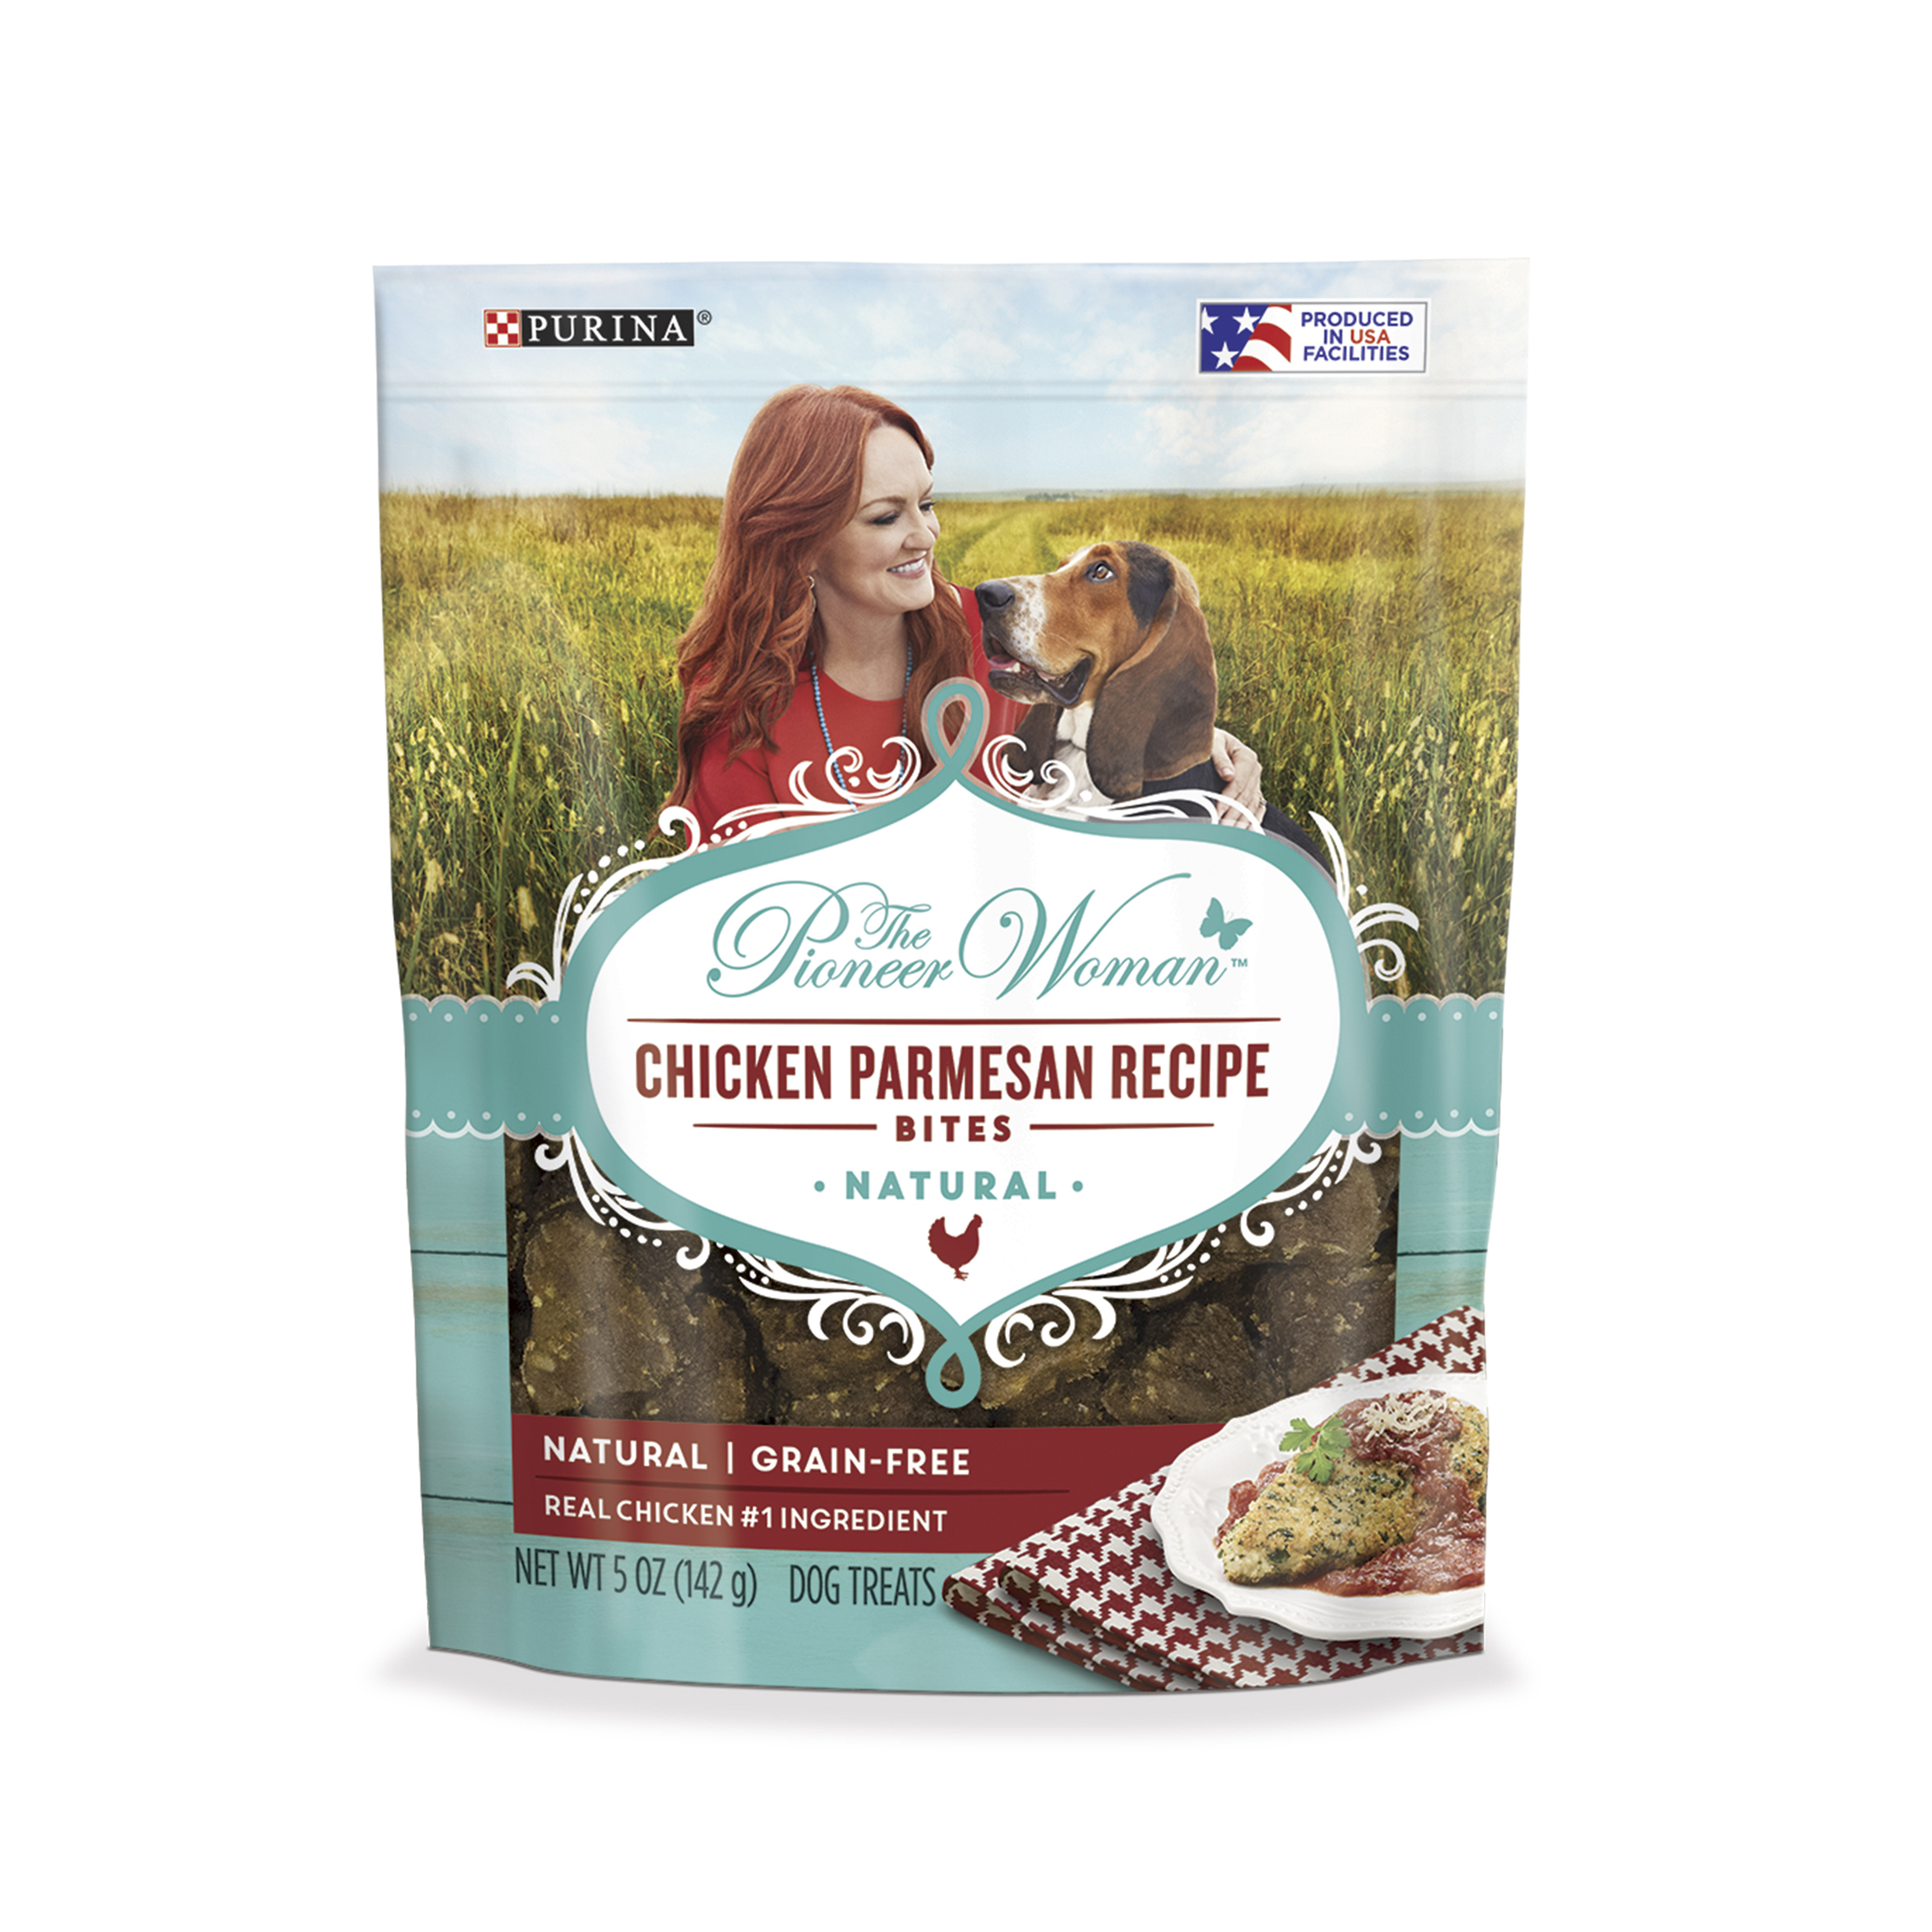 The Pioneer Woman Grain Free, Natural Dog Treats; Chicken Parmesan Recipe Bites - 5 oz. Pouch